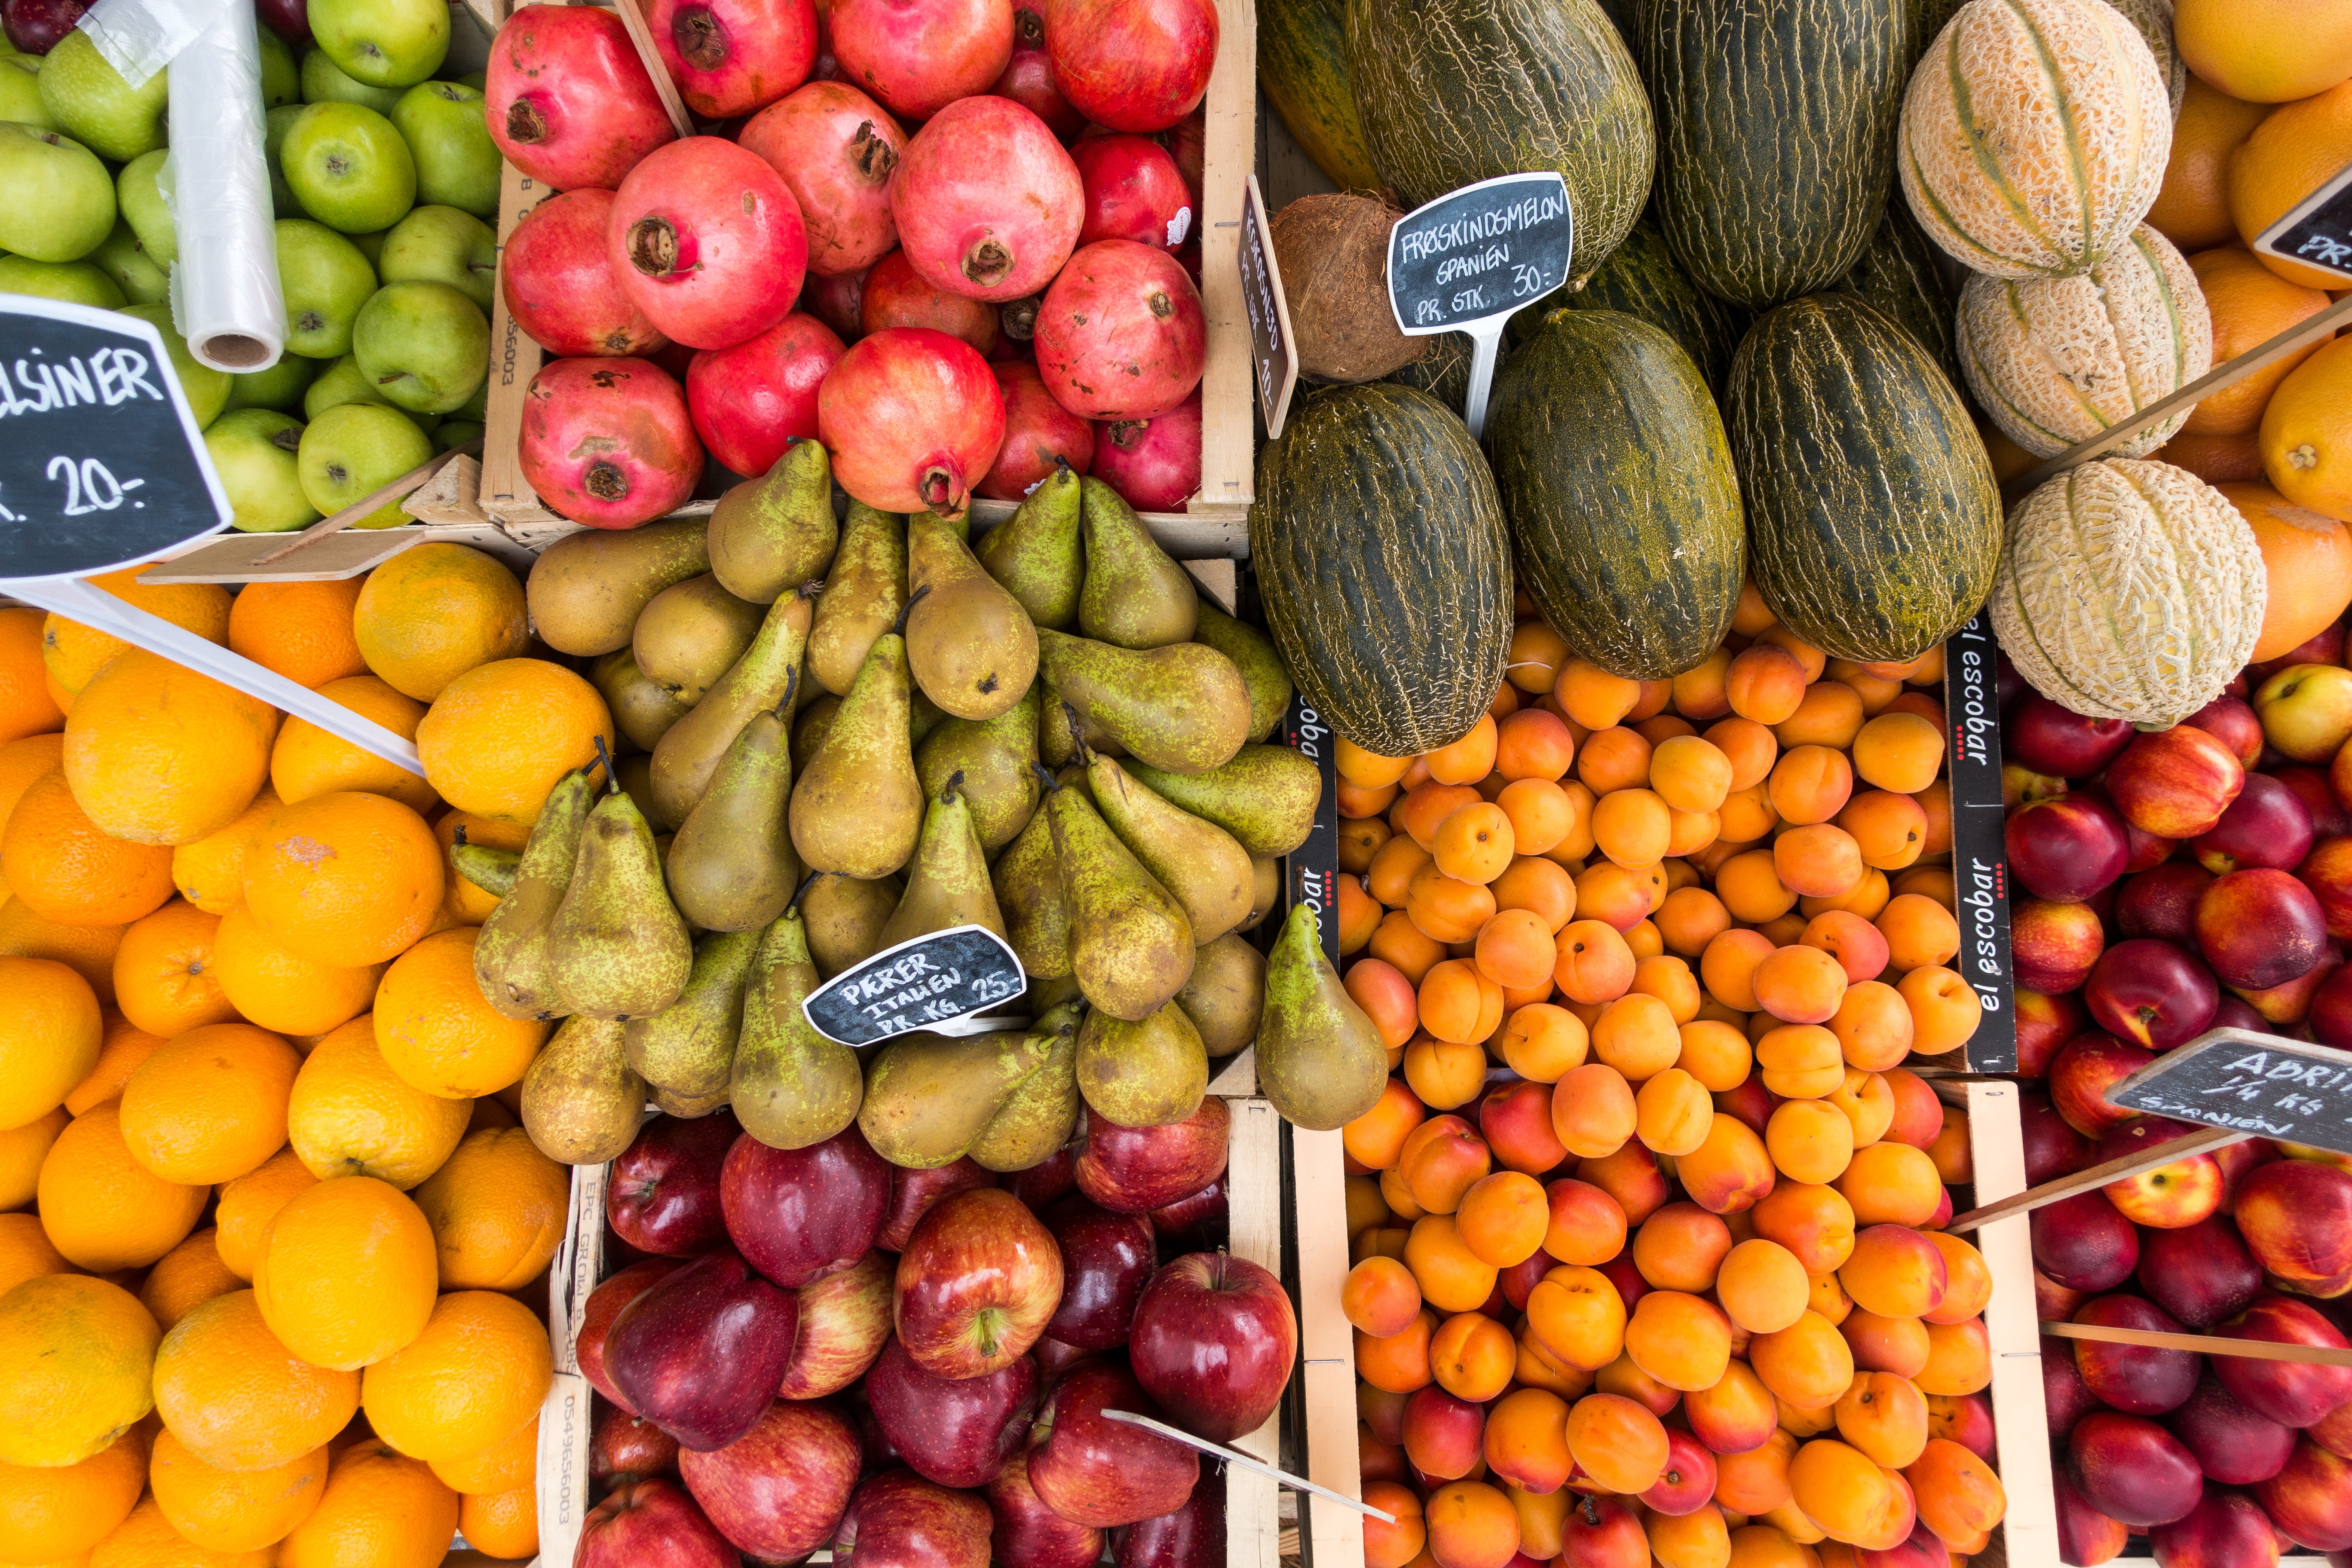 Boxes of fresh fruit and produce at a farmer's market